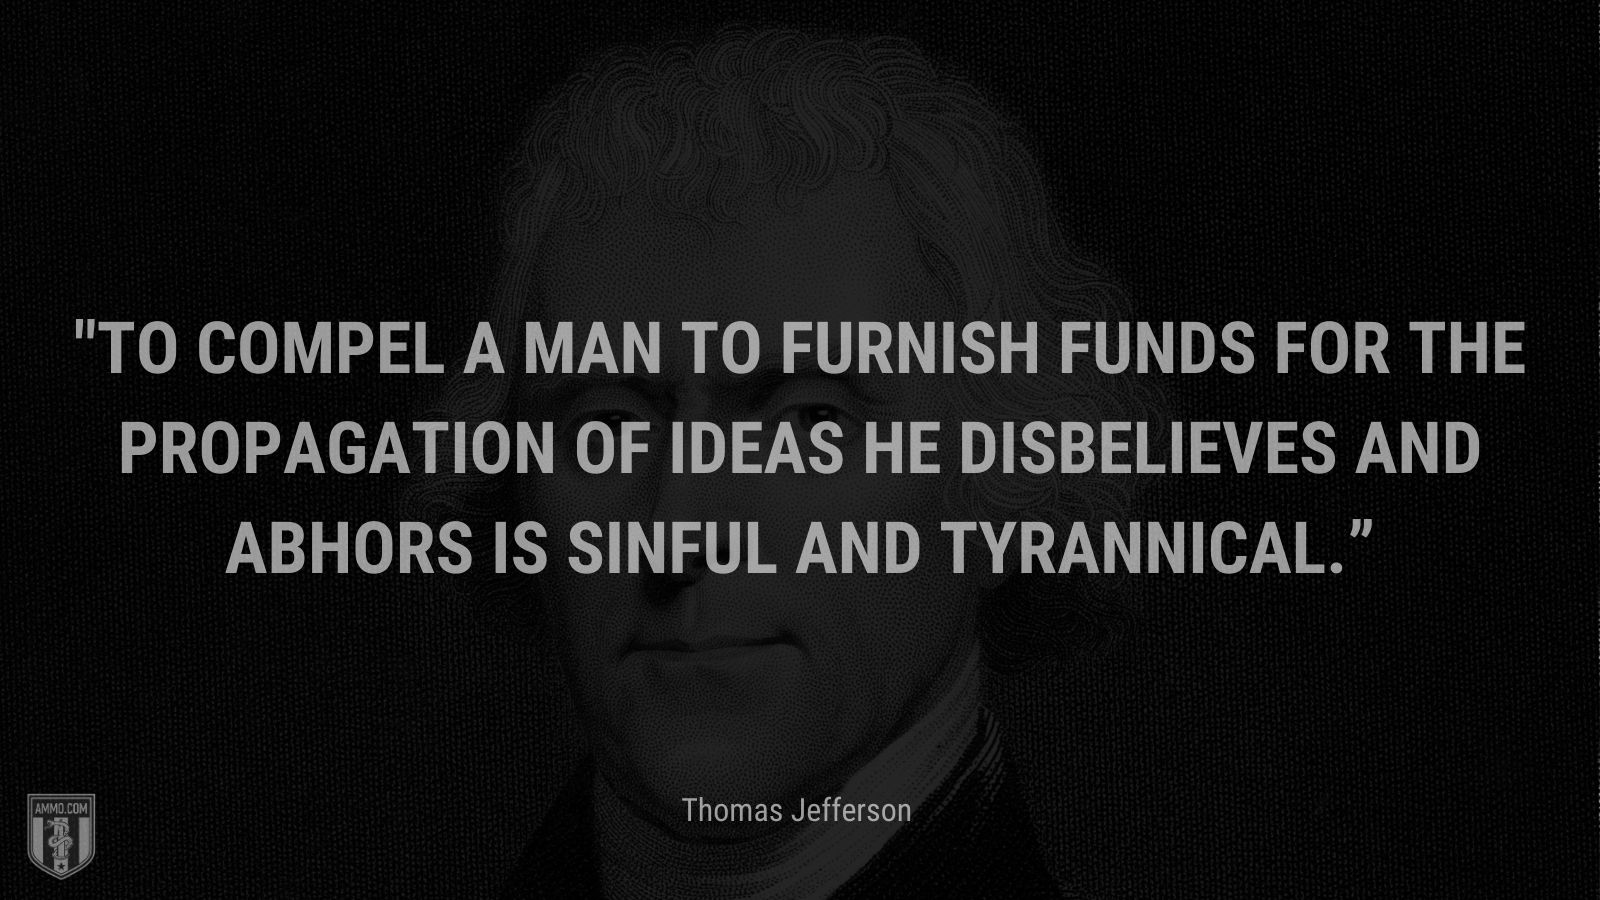 """""""To compel a man to furnish funds for the propagation of ideas he disbelieves and abhors is sinful and tyrannical."""" - Thomas Jefferson"""